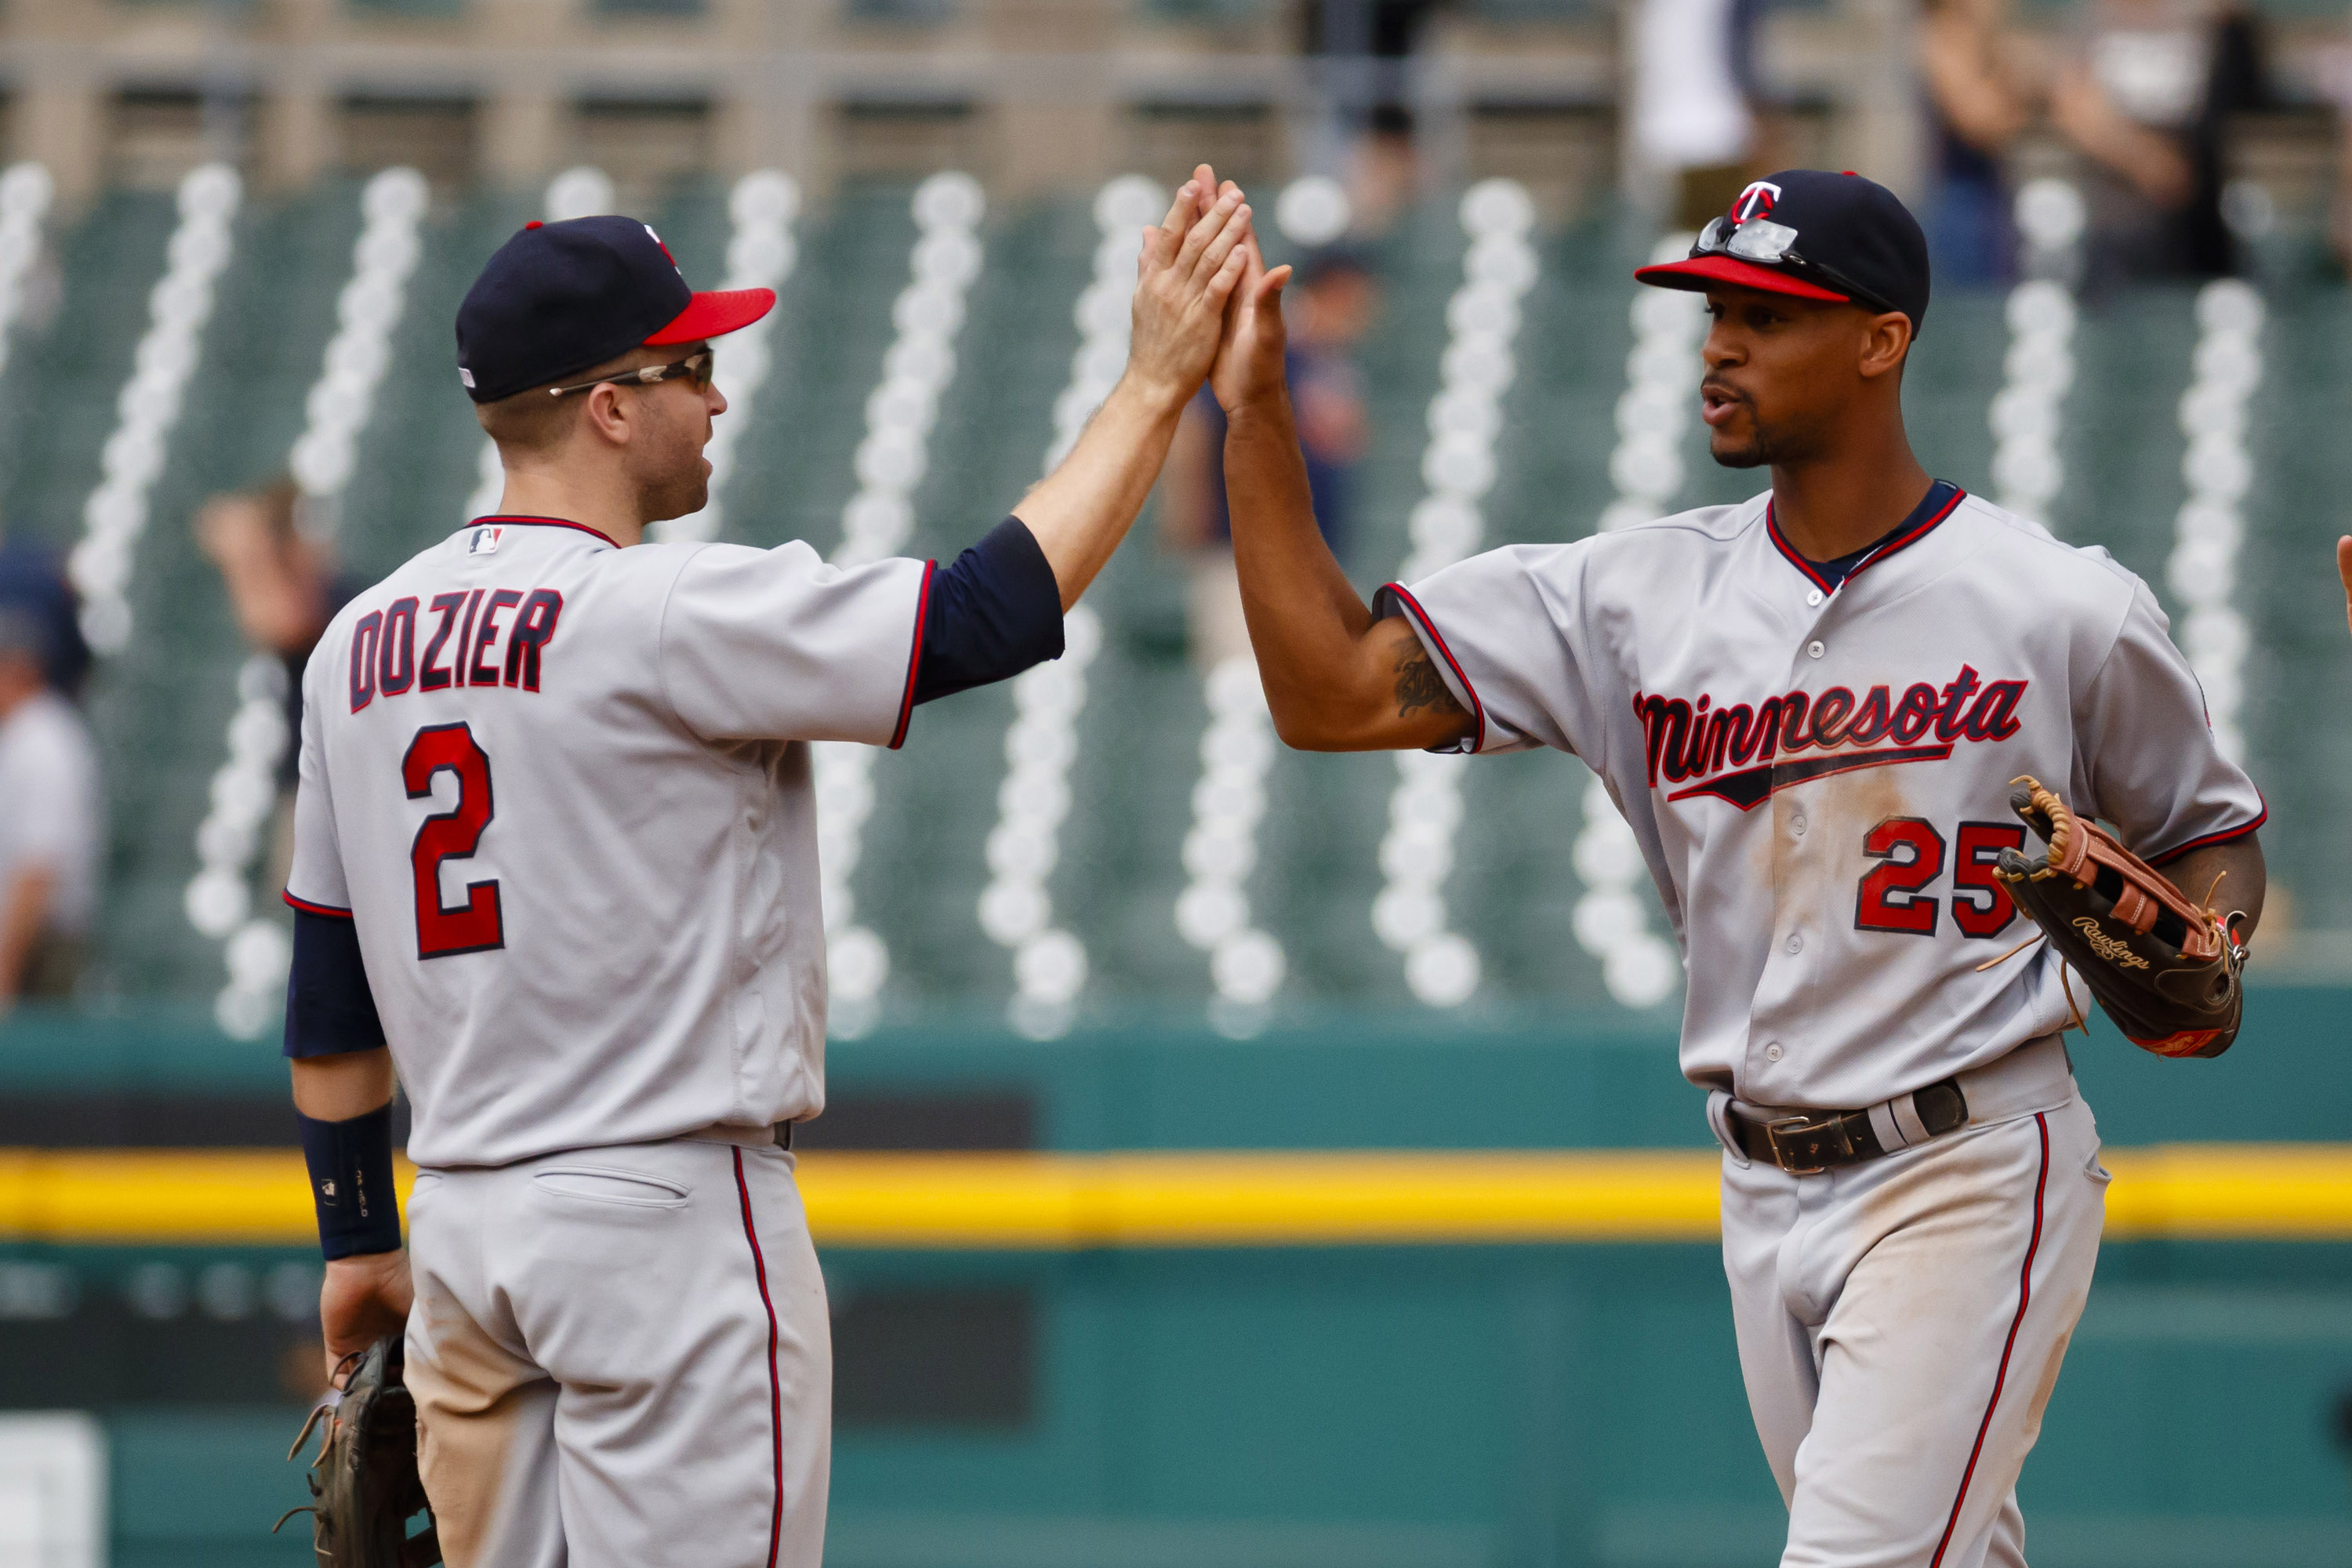 Byron Buxton and Brian Dozier